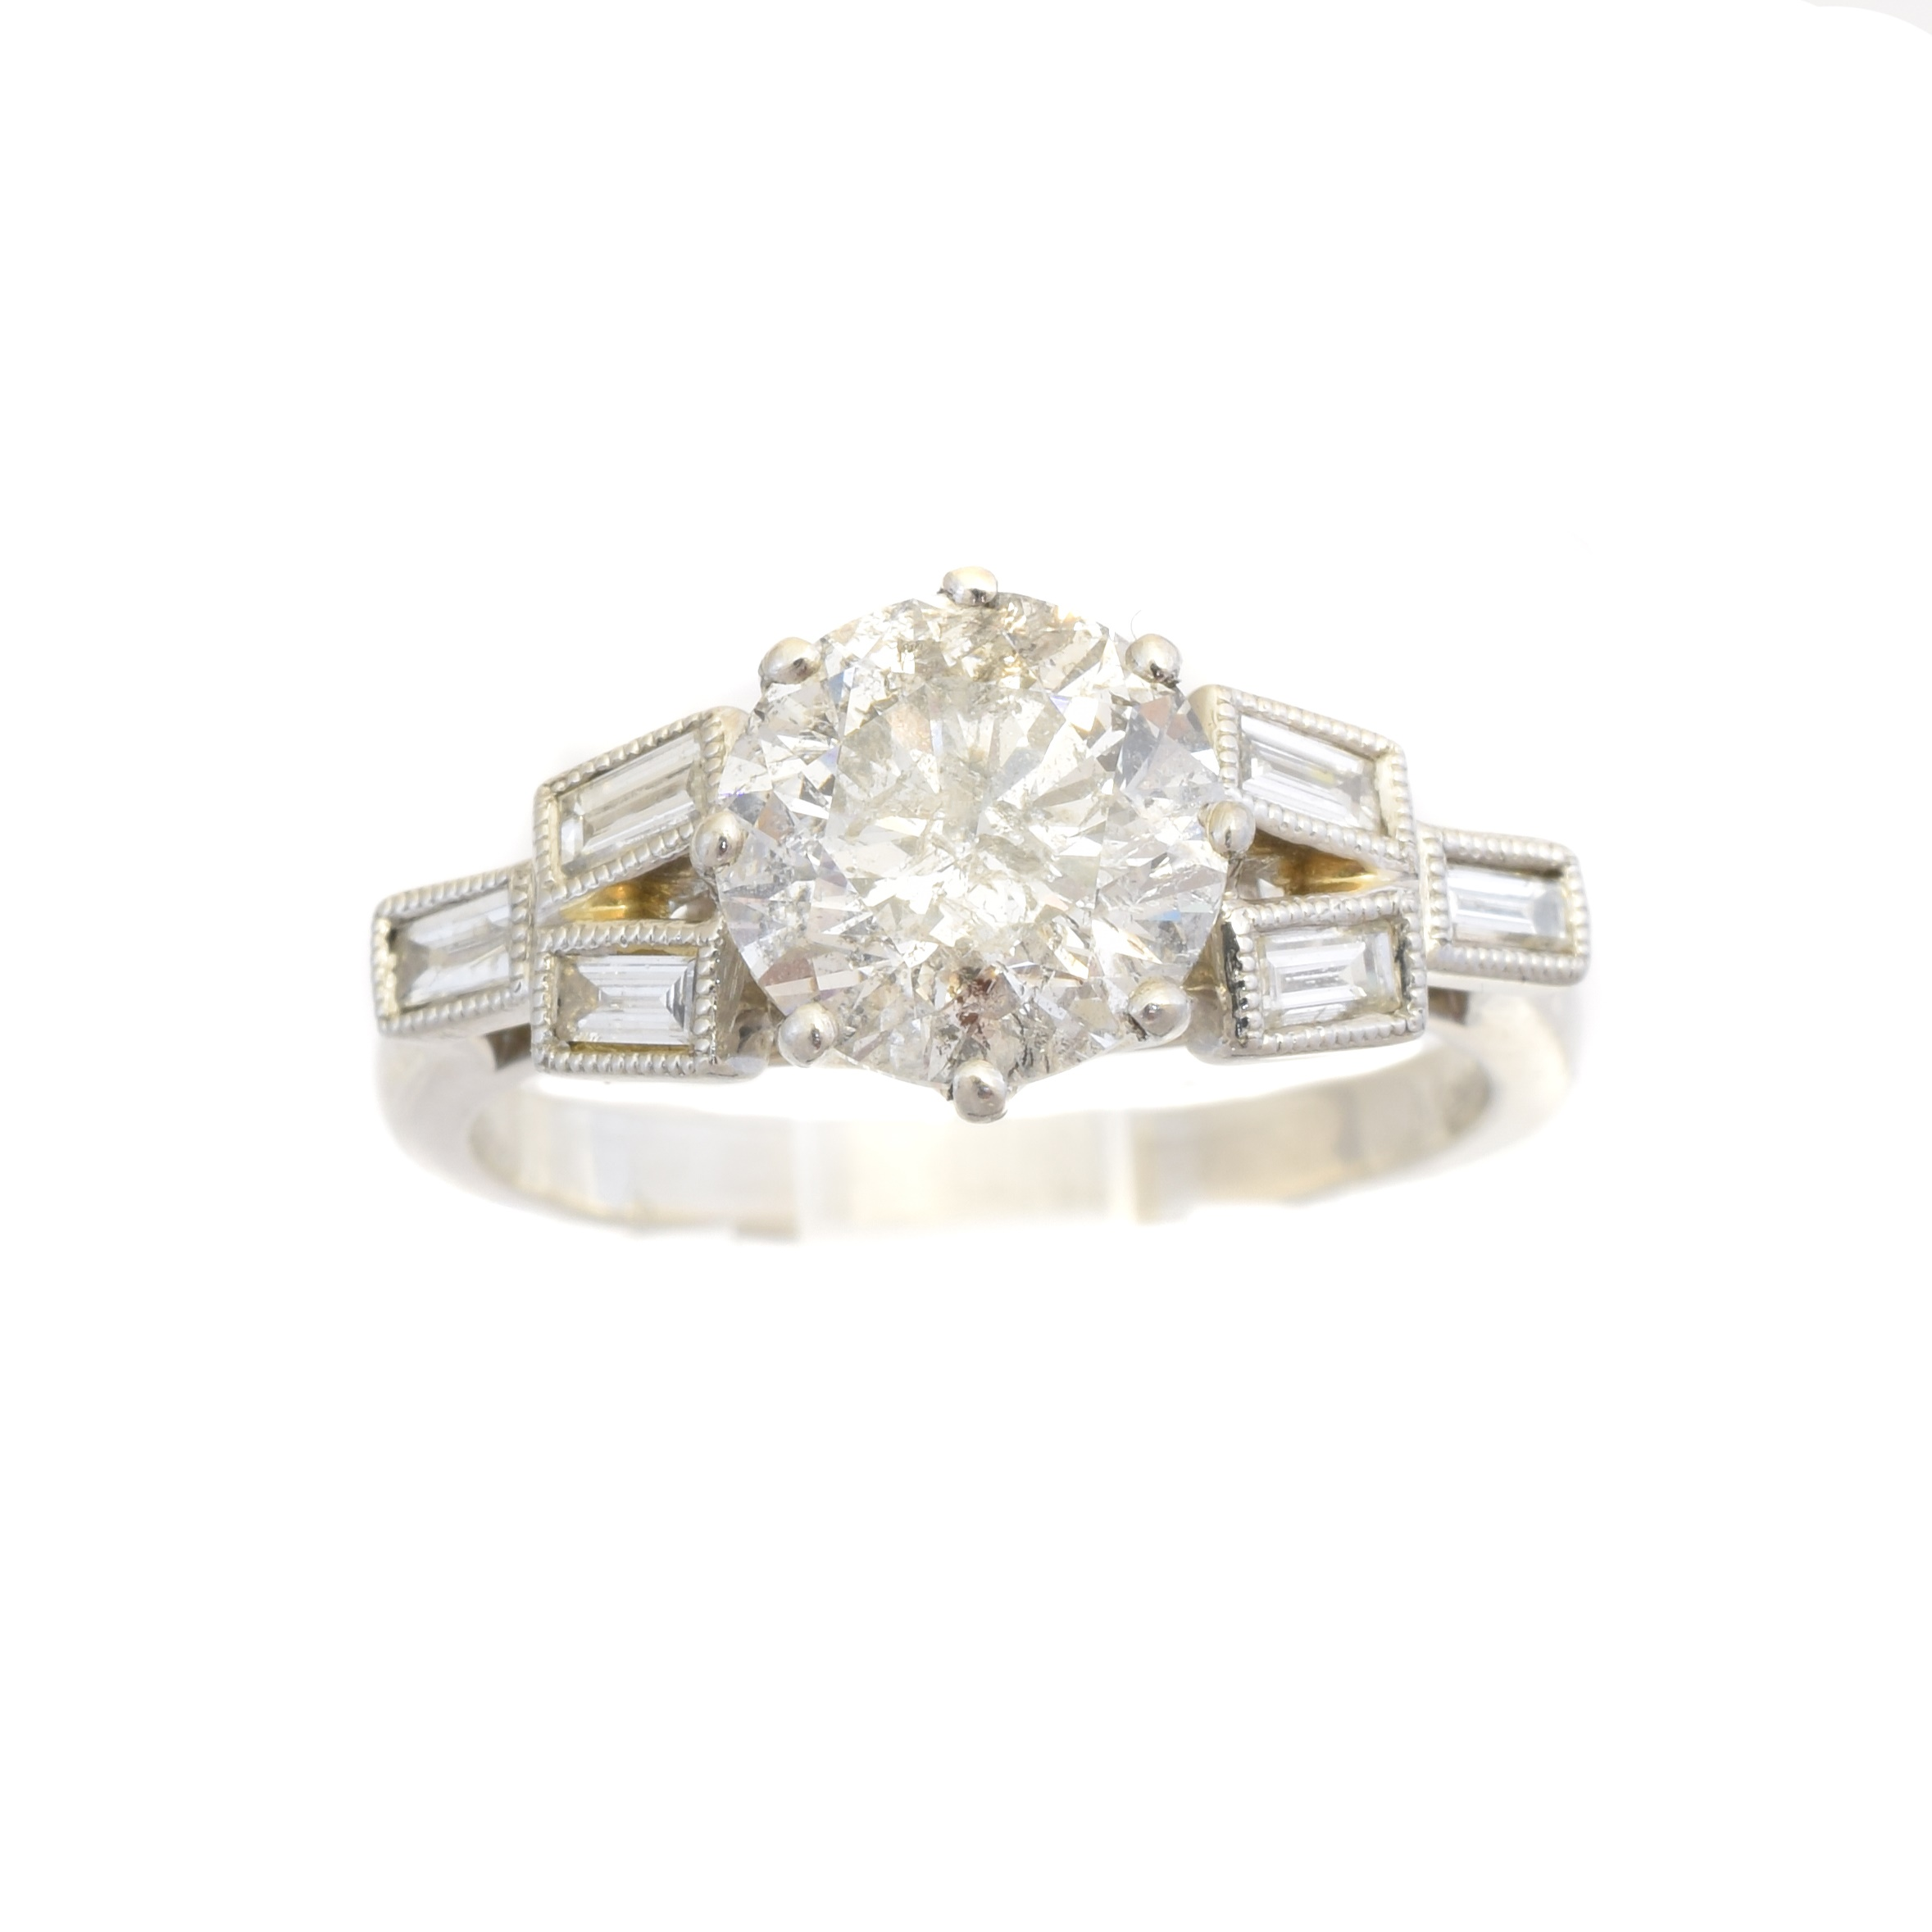 A platinum diamond single stone ring, the brilliant cut diamond with baguette cut diamond trefoil sides, estimated total diamond weight 2.30cts, principal diamond estimated 2.10cts, estimated I-J colour, P1-P2 clarity, hallmarks for Birmingham, ring size O1/2, gross weight 6.2g.